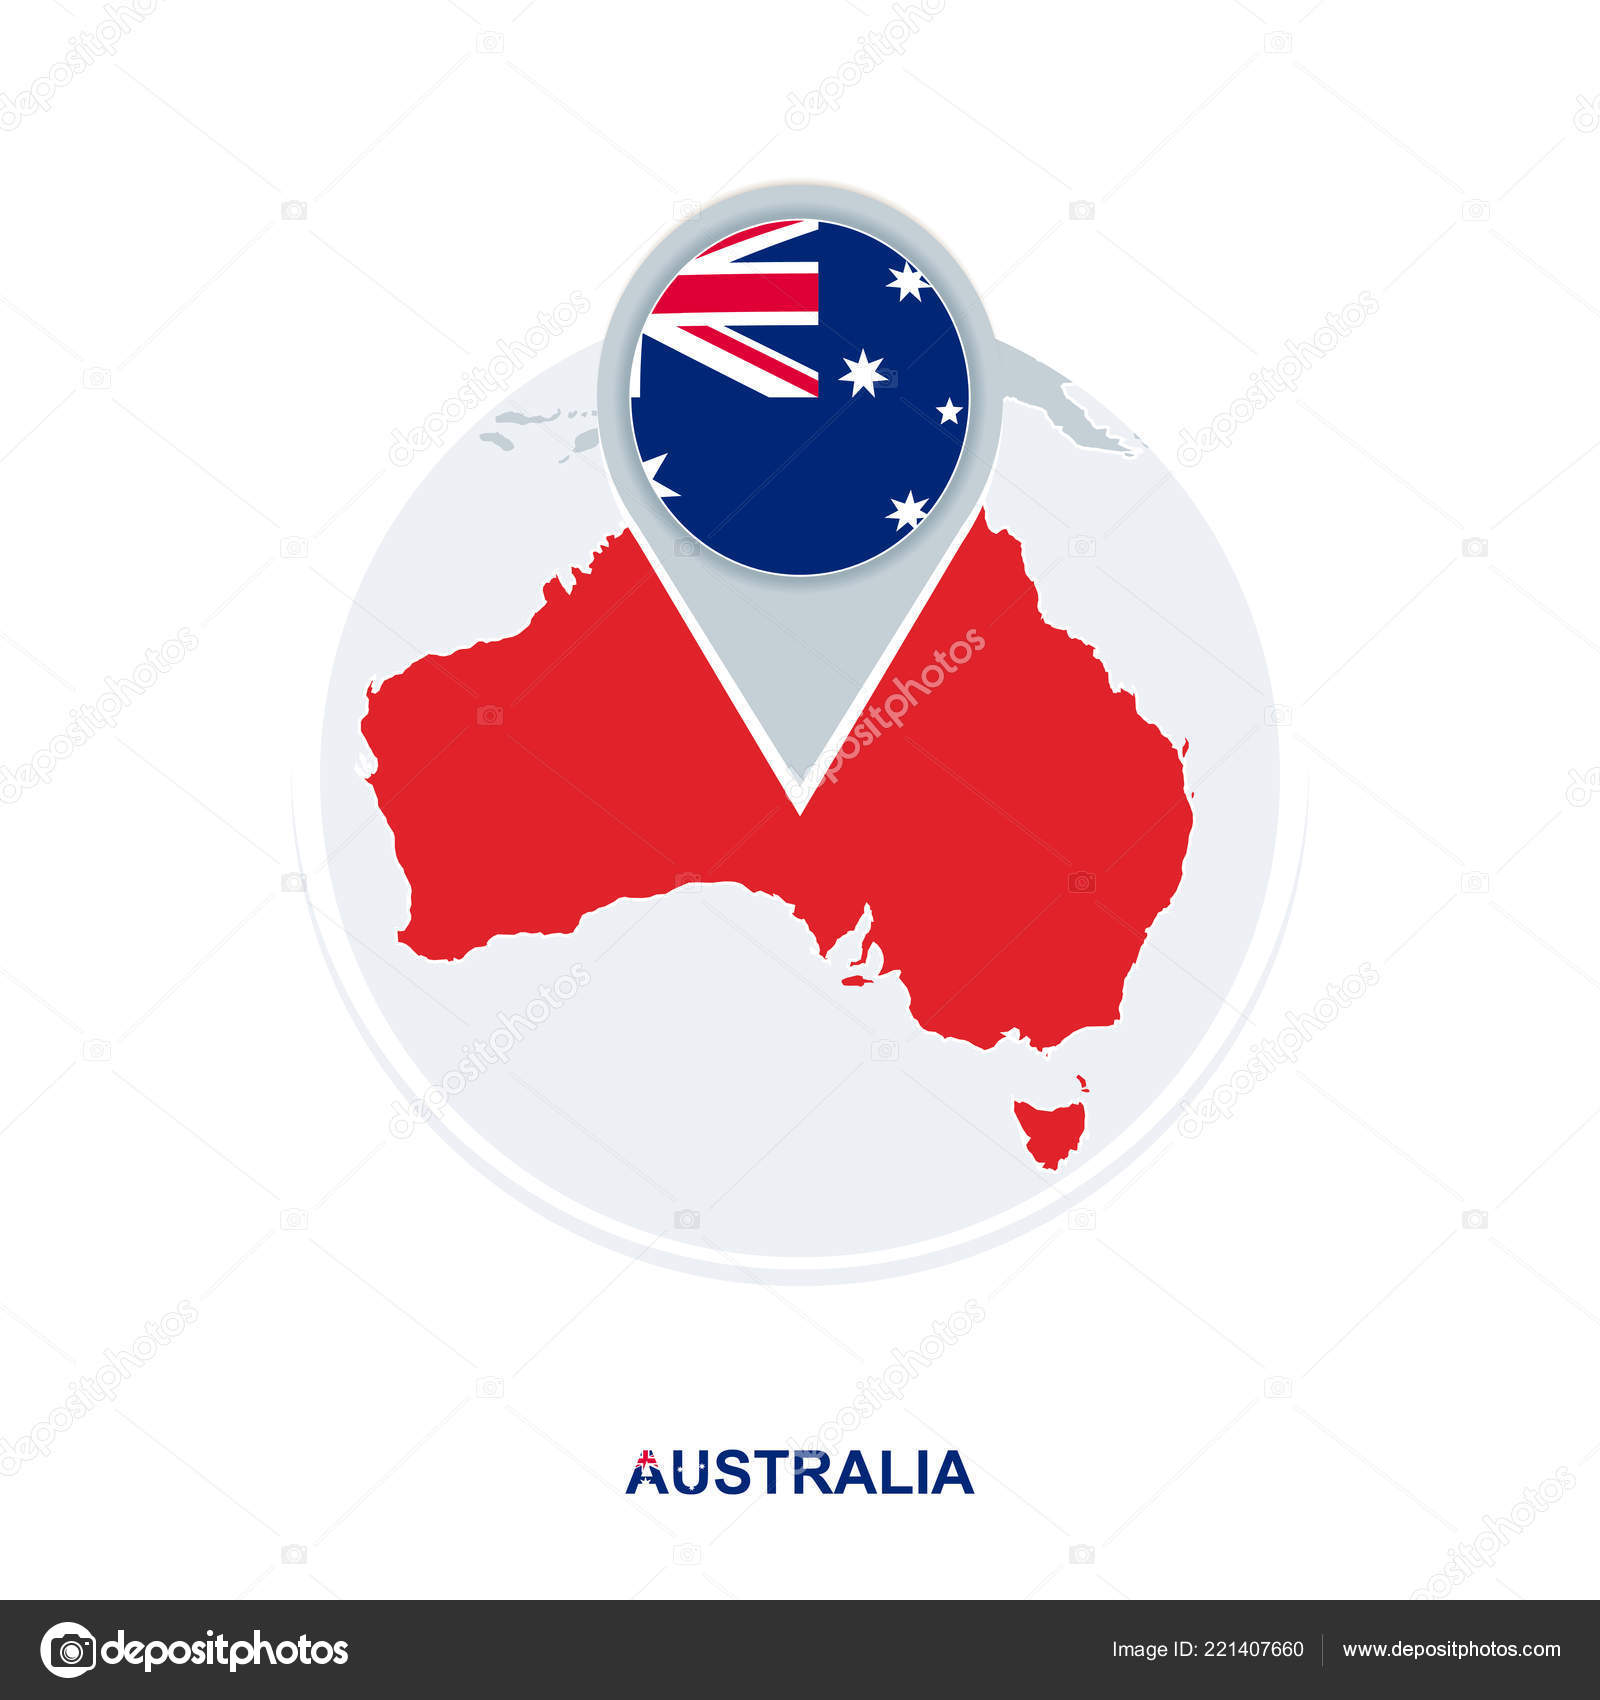 Australia Map With Flag.Australia Map Flag Vector Map Icon Highlighted Australia Stock